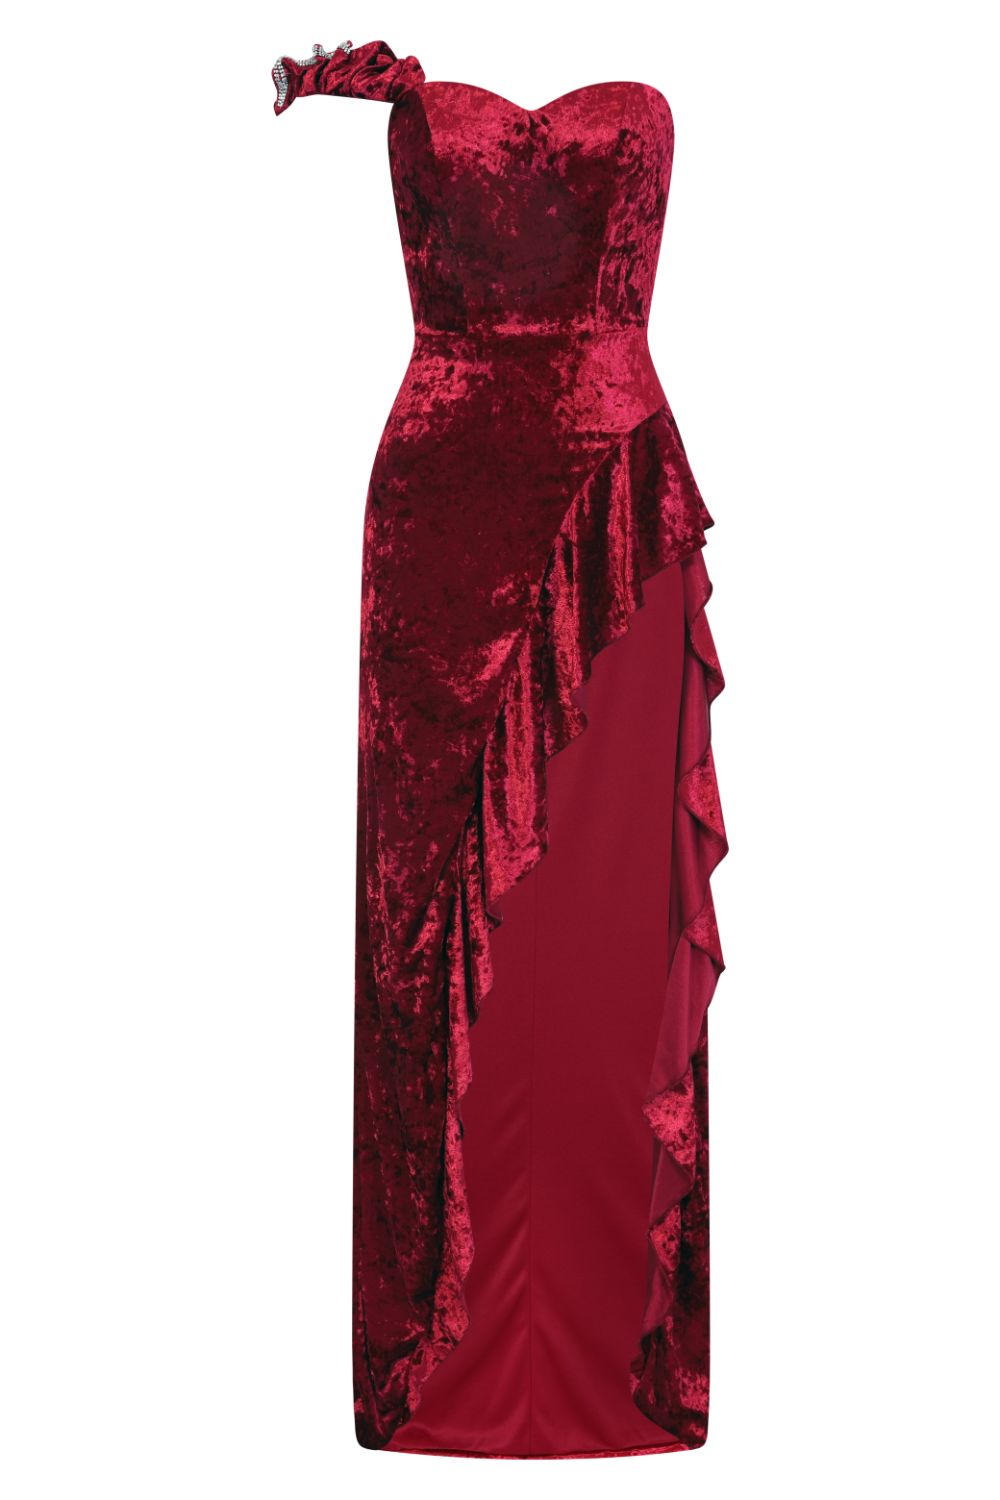 Secret Romance Luxe Berry Velvet Ruffle Thigh Slit Maxi Dress